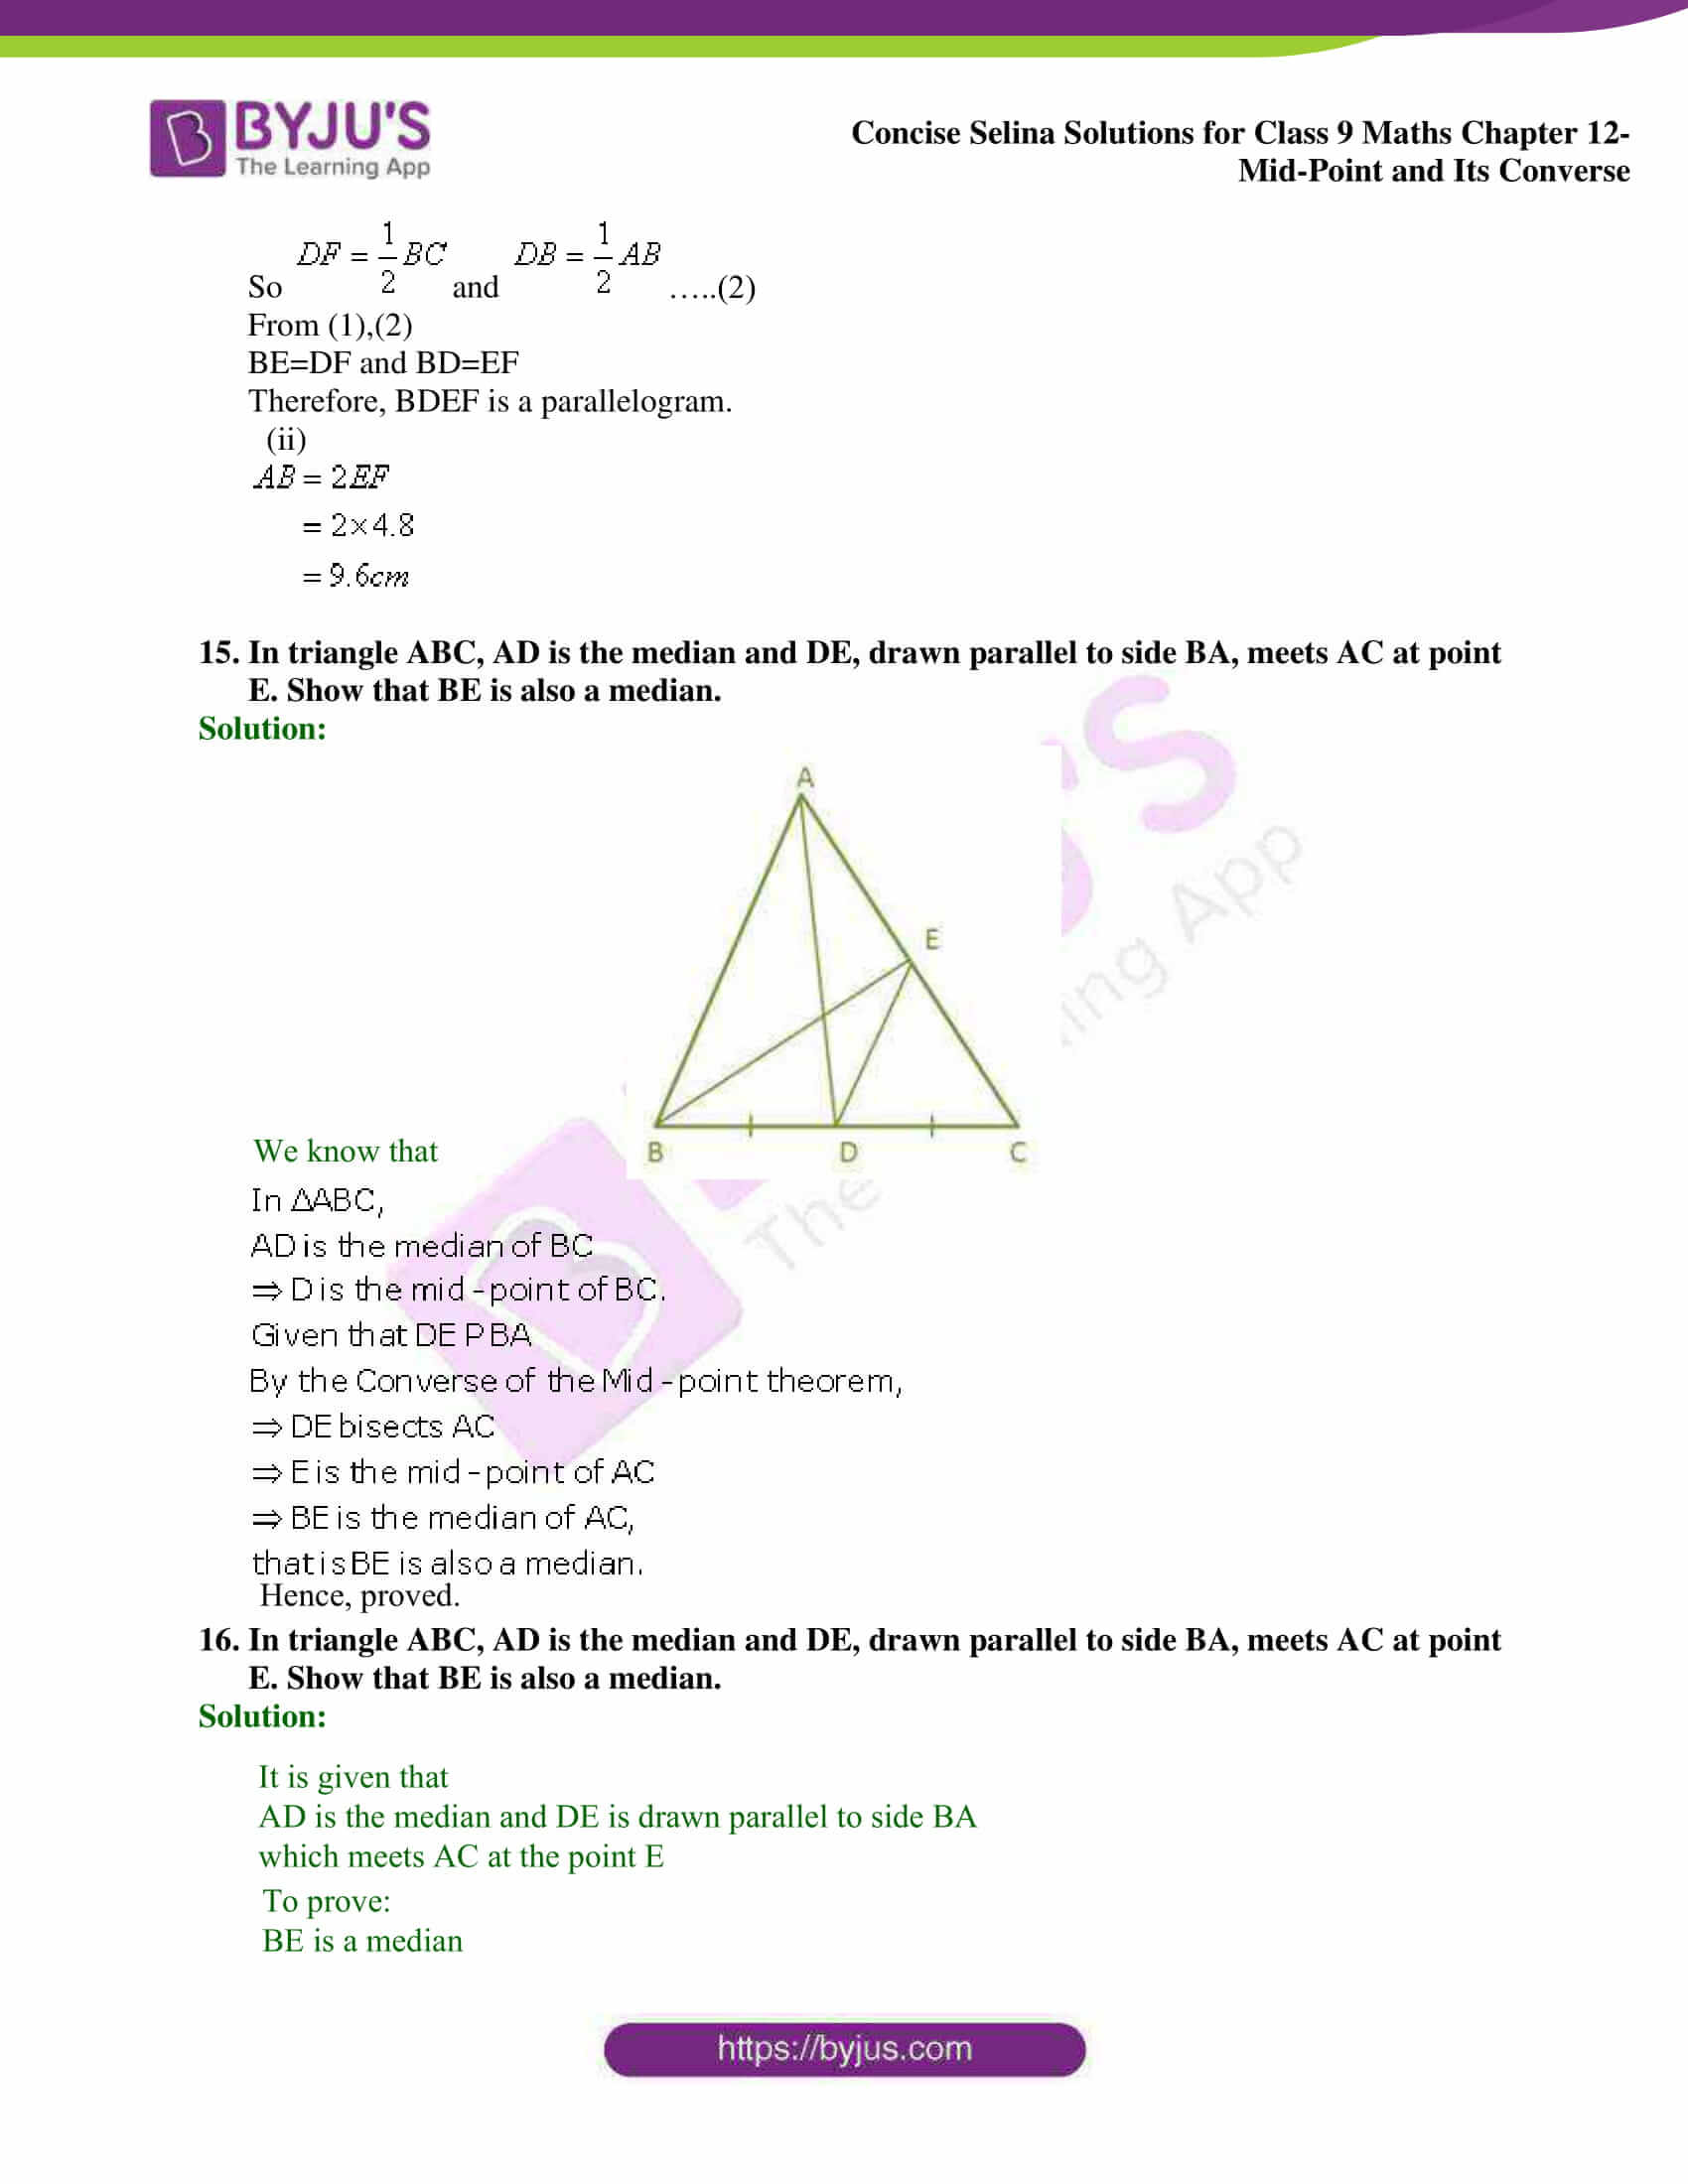 selina Solutions for Class 9 Maths Chapter 12 10